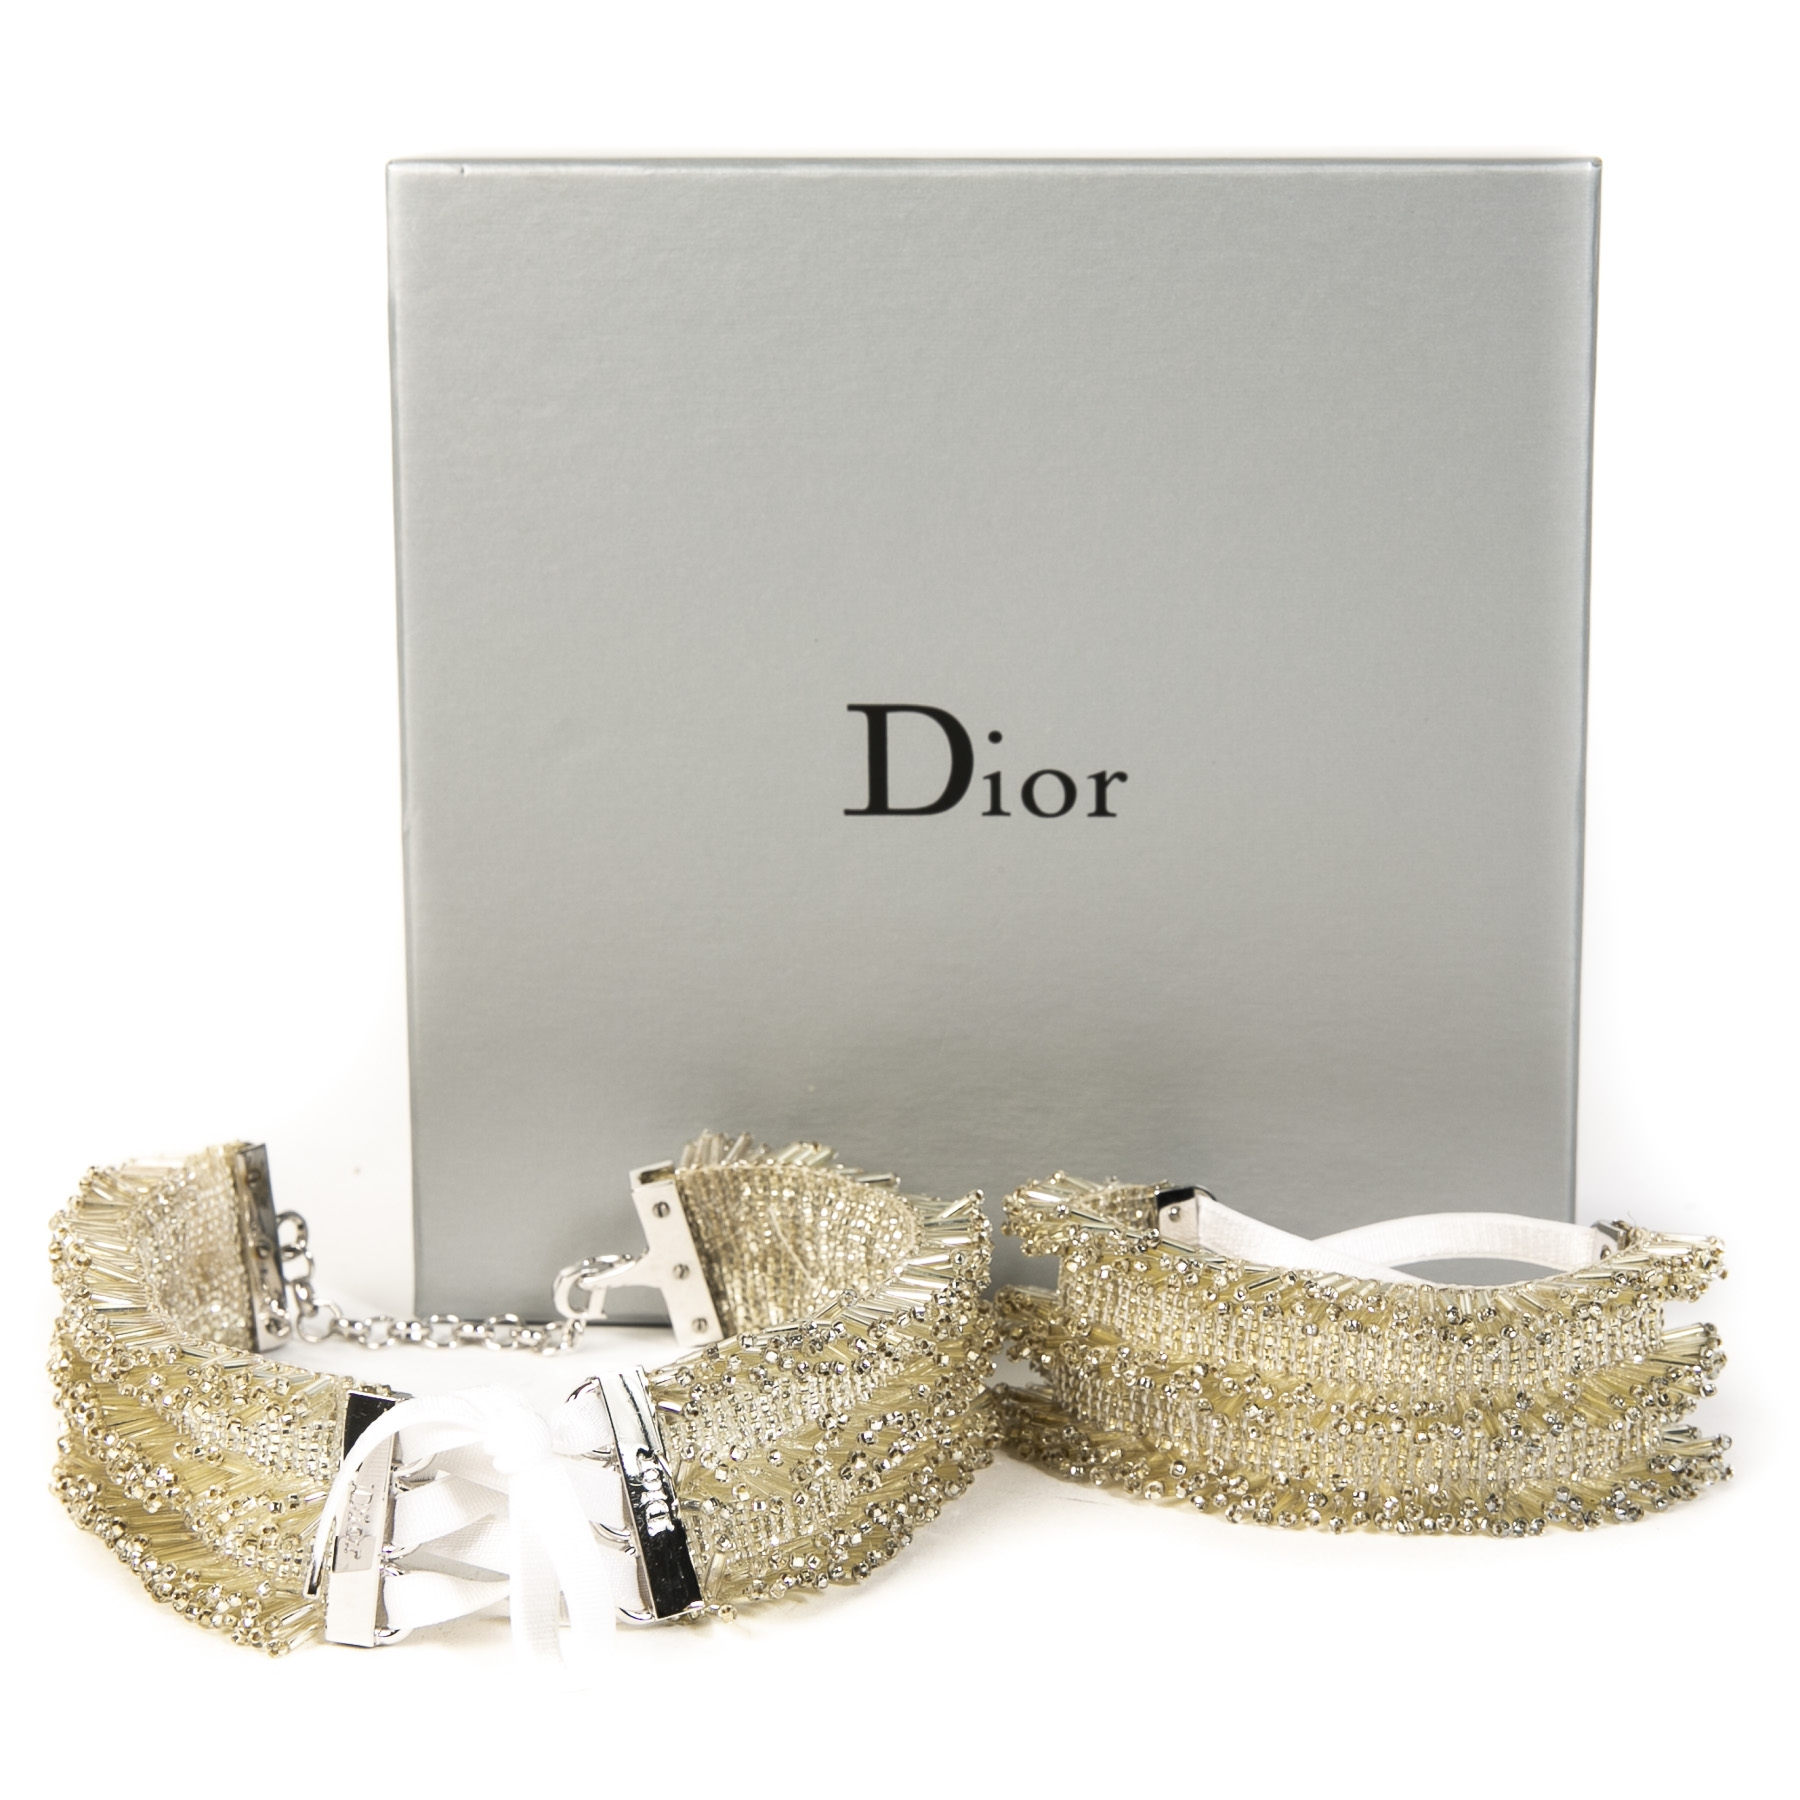 Authentique seconde main vintage Dior Beaded Necklace Bracelet and Earrings Set achète en ligne webshop LabelLOV